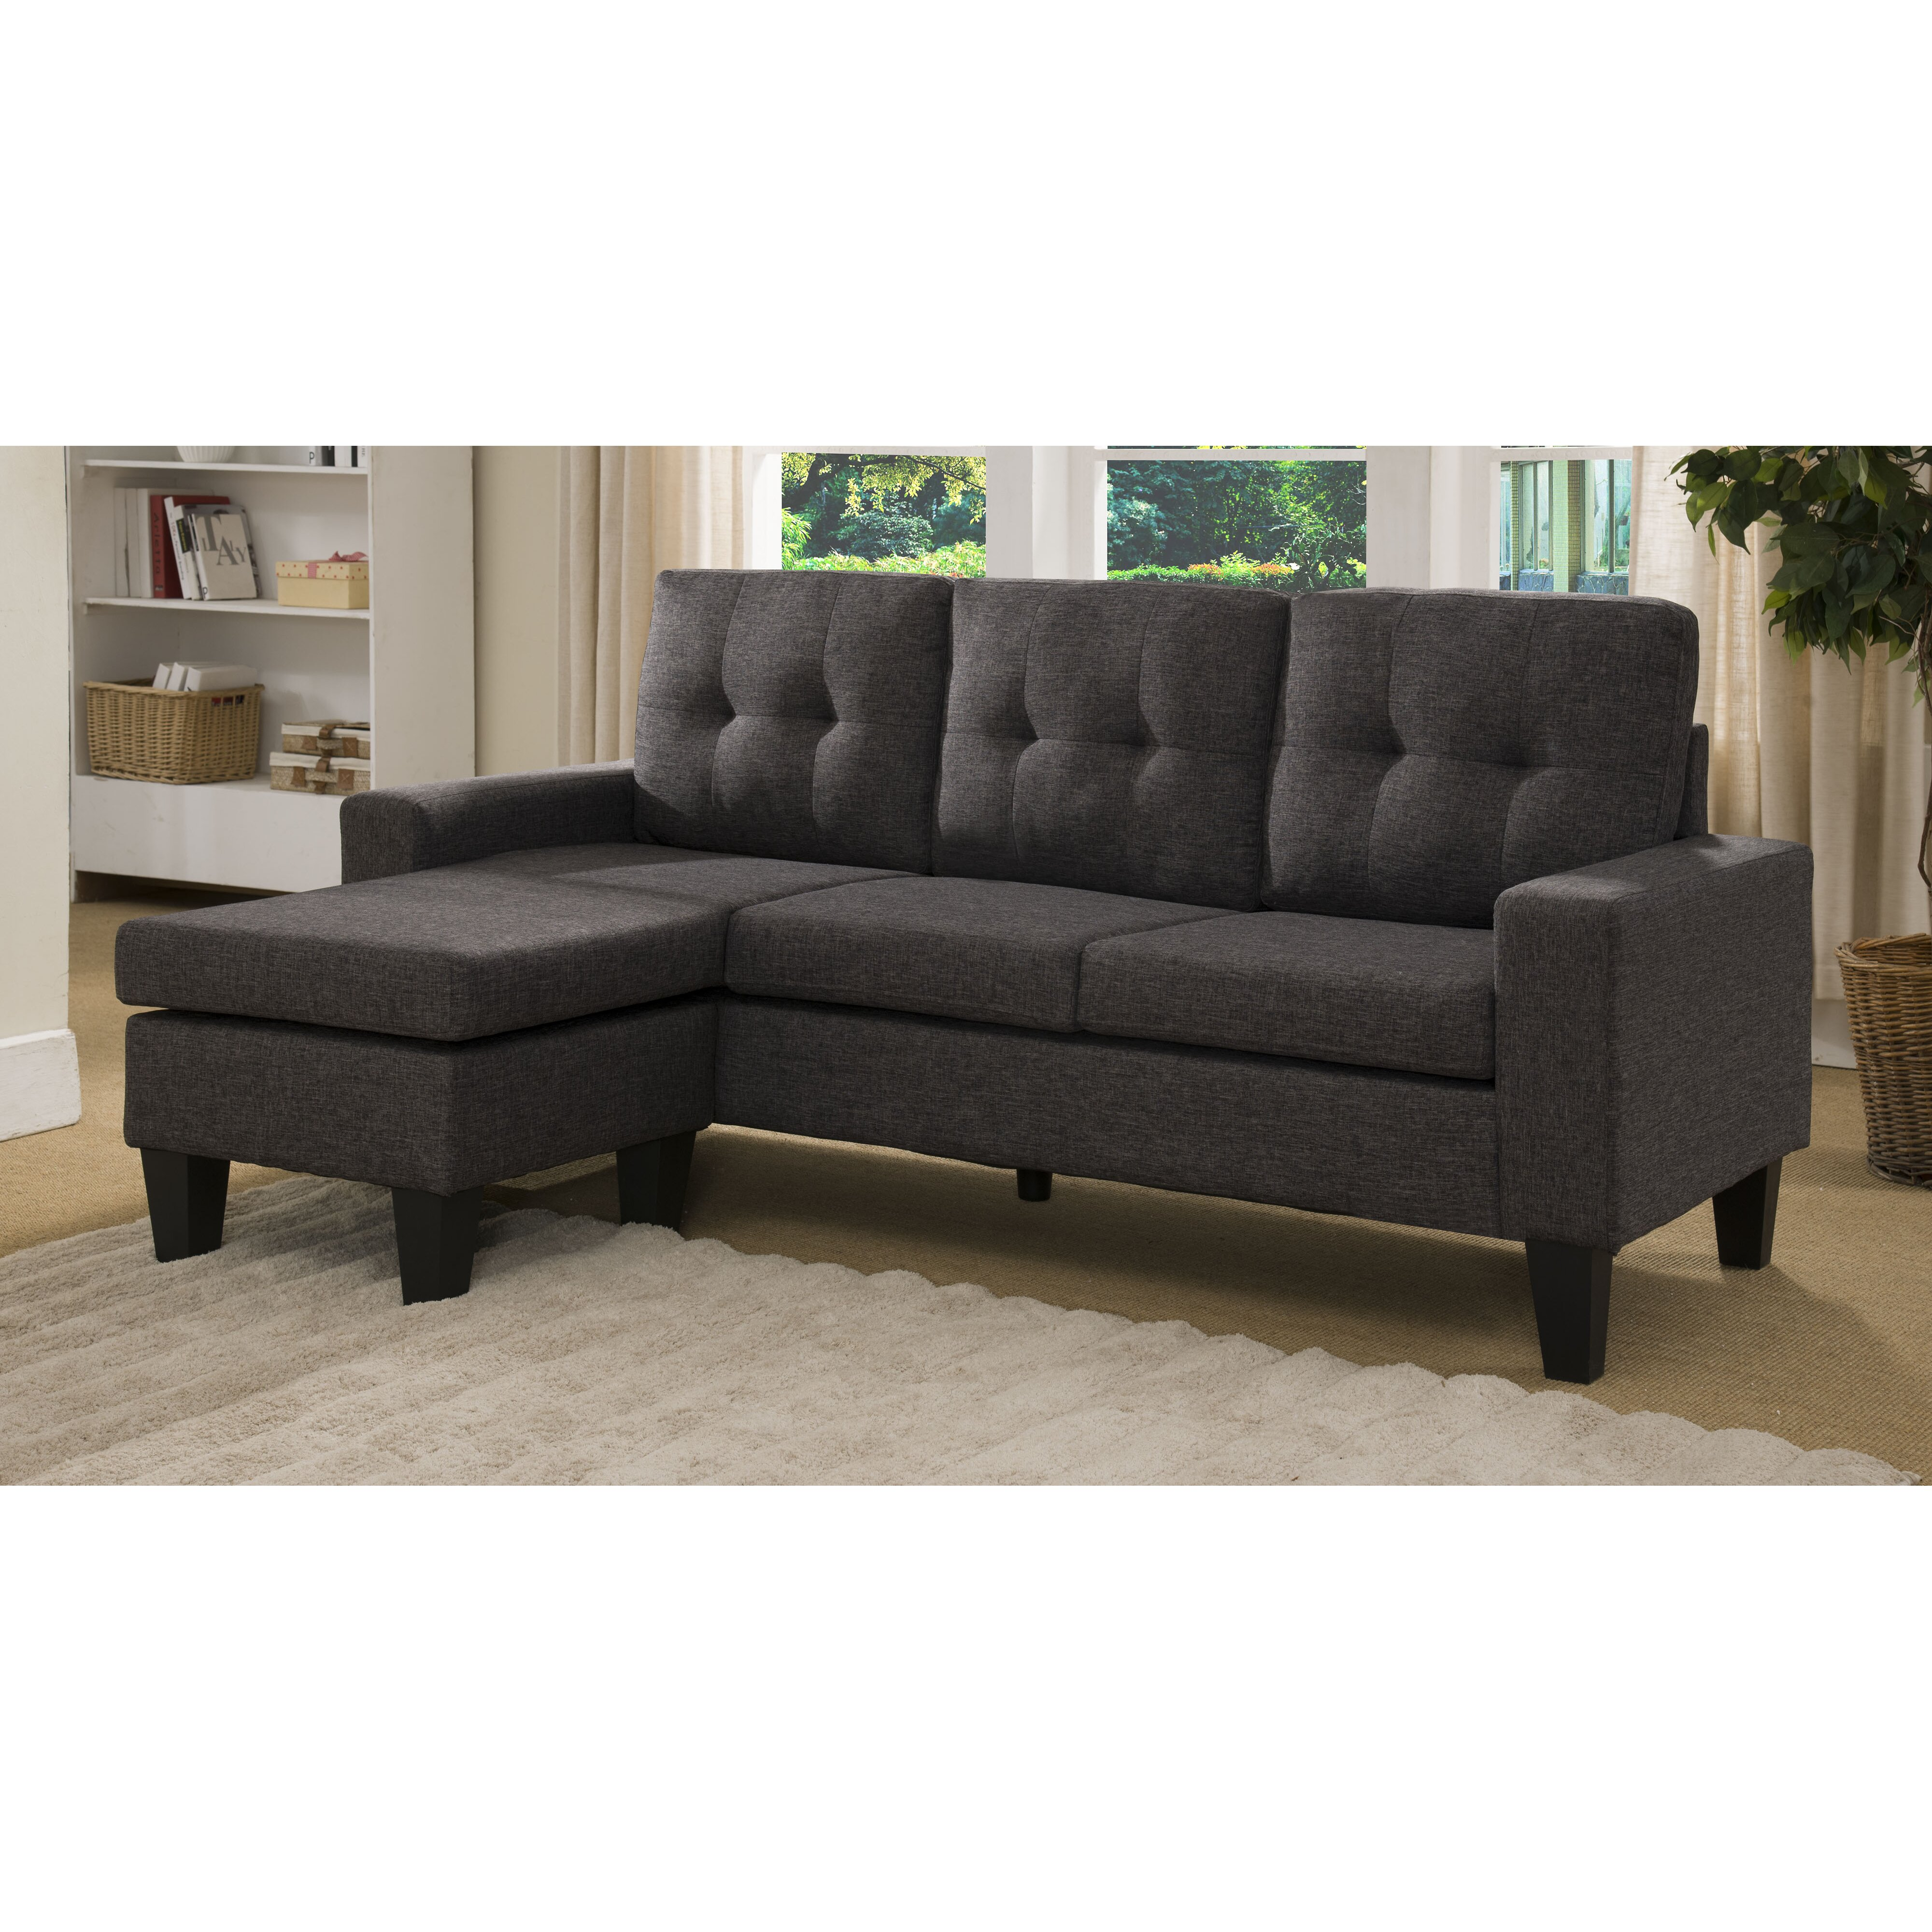 5 Piece Sectional Sofa Roselawnlutheran